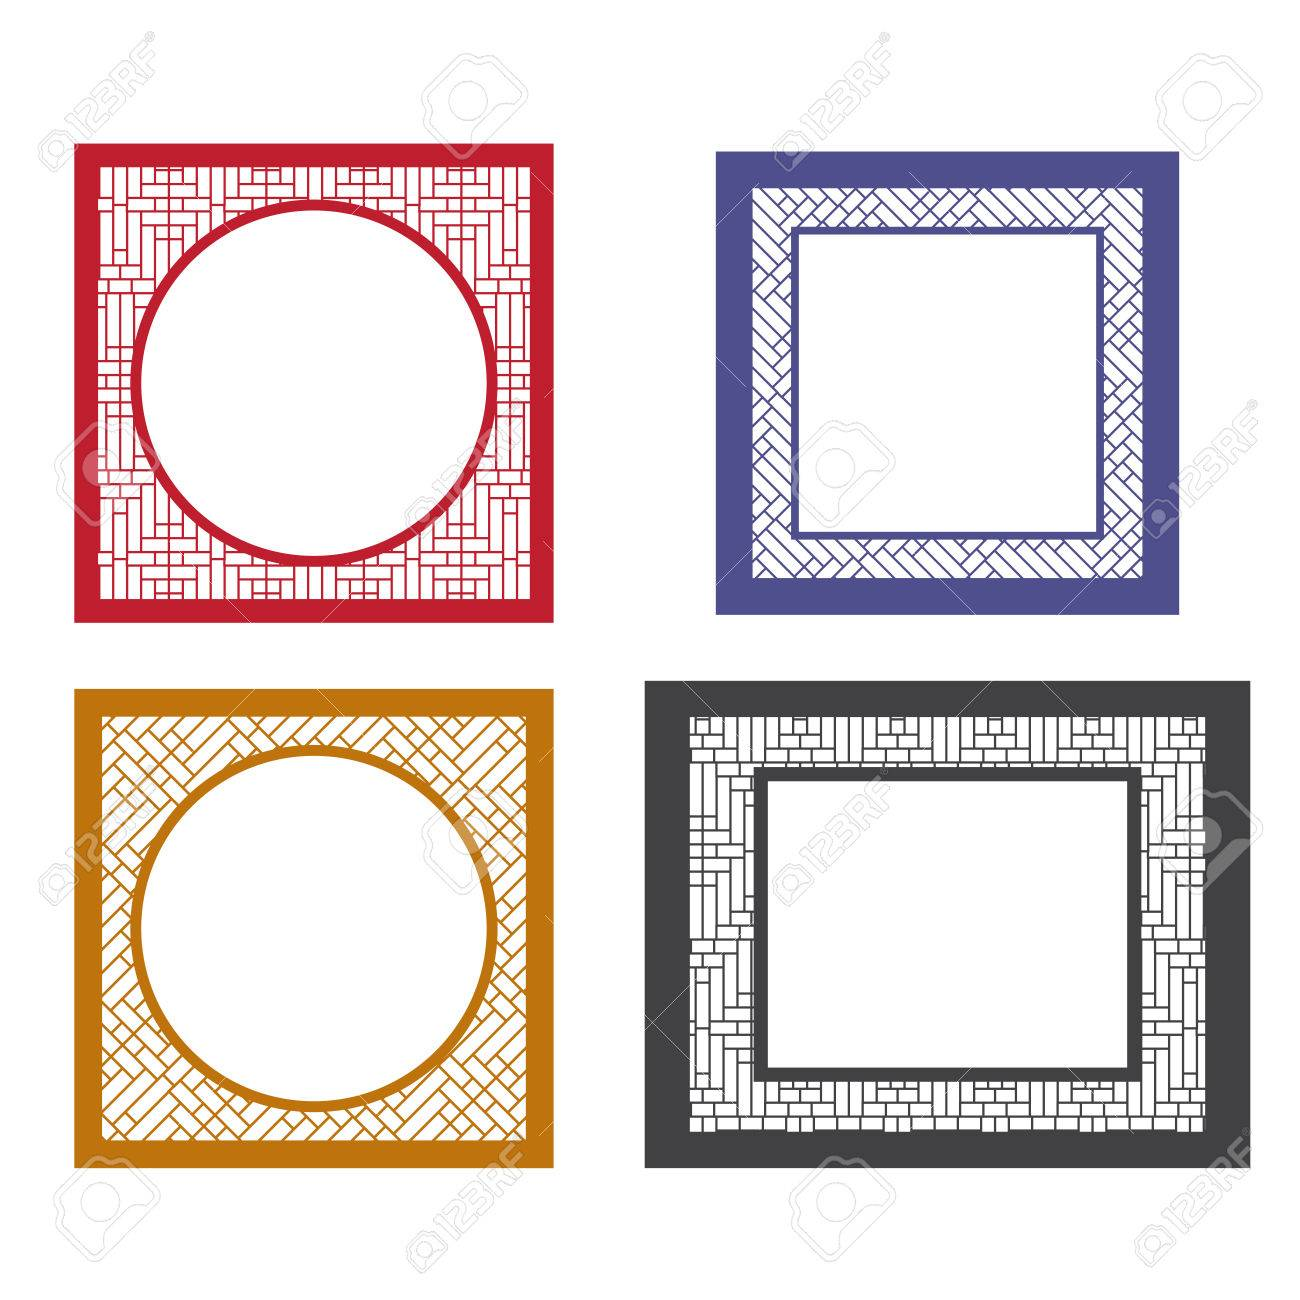 Set Of Blank Picture Frame Template With Asia Textured Boarder ...